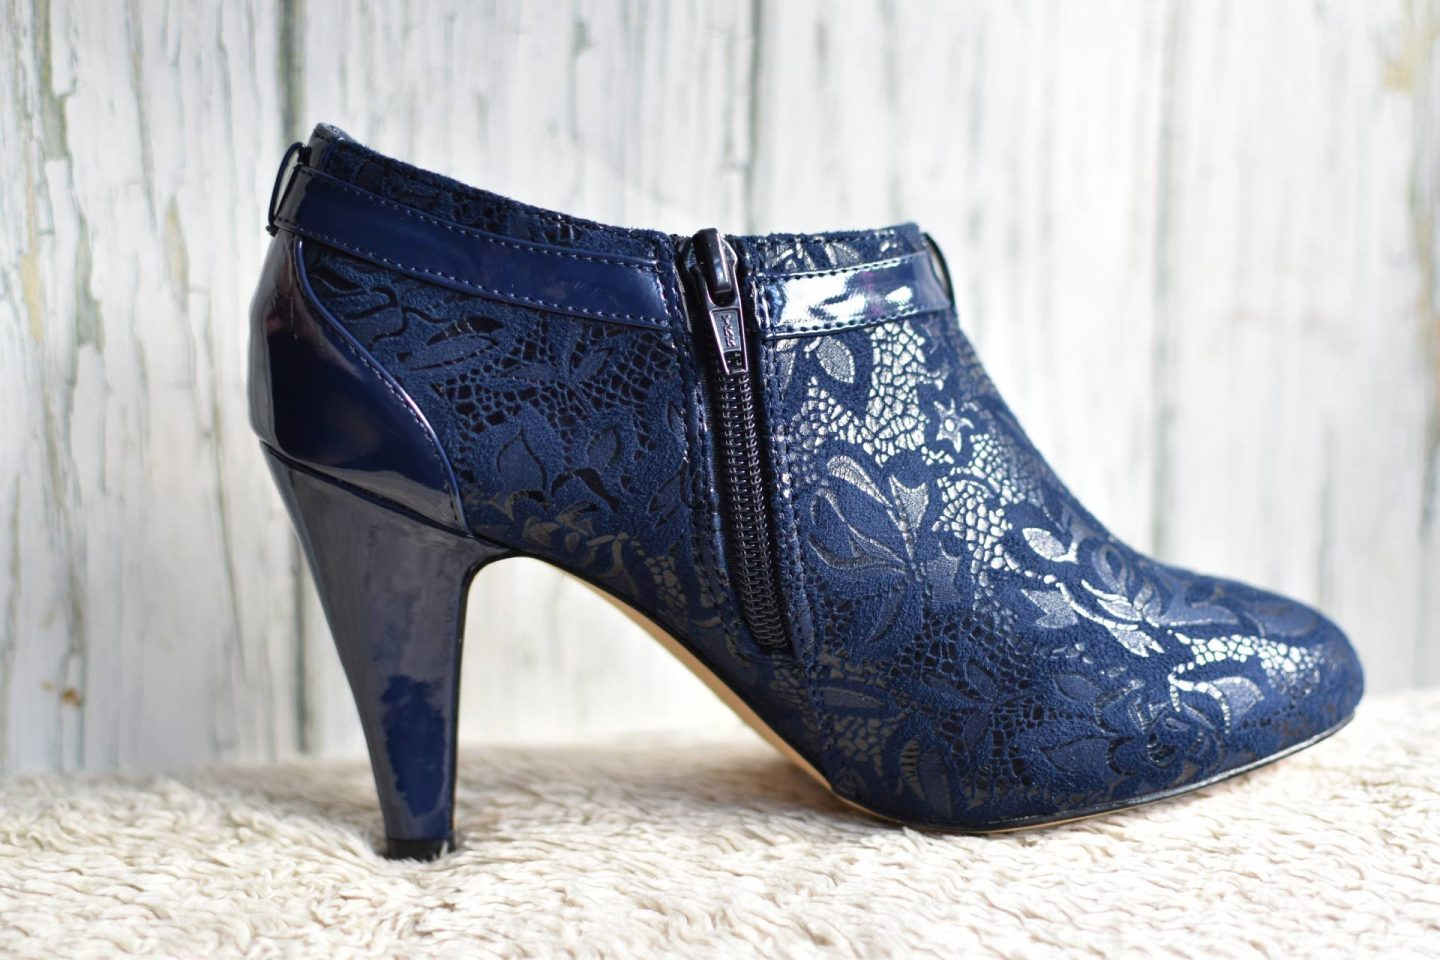 loving these booties, perfect for dressing up jeans or a little back dress this autumn and winter